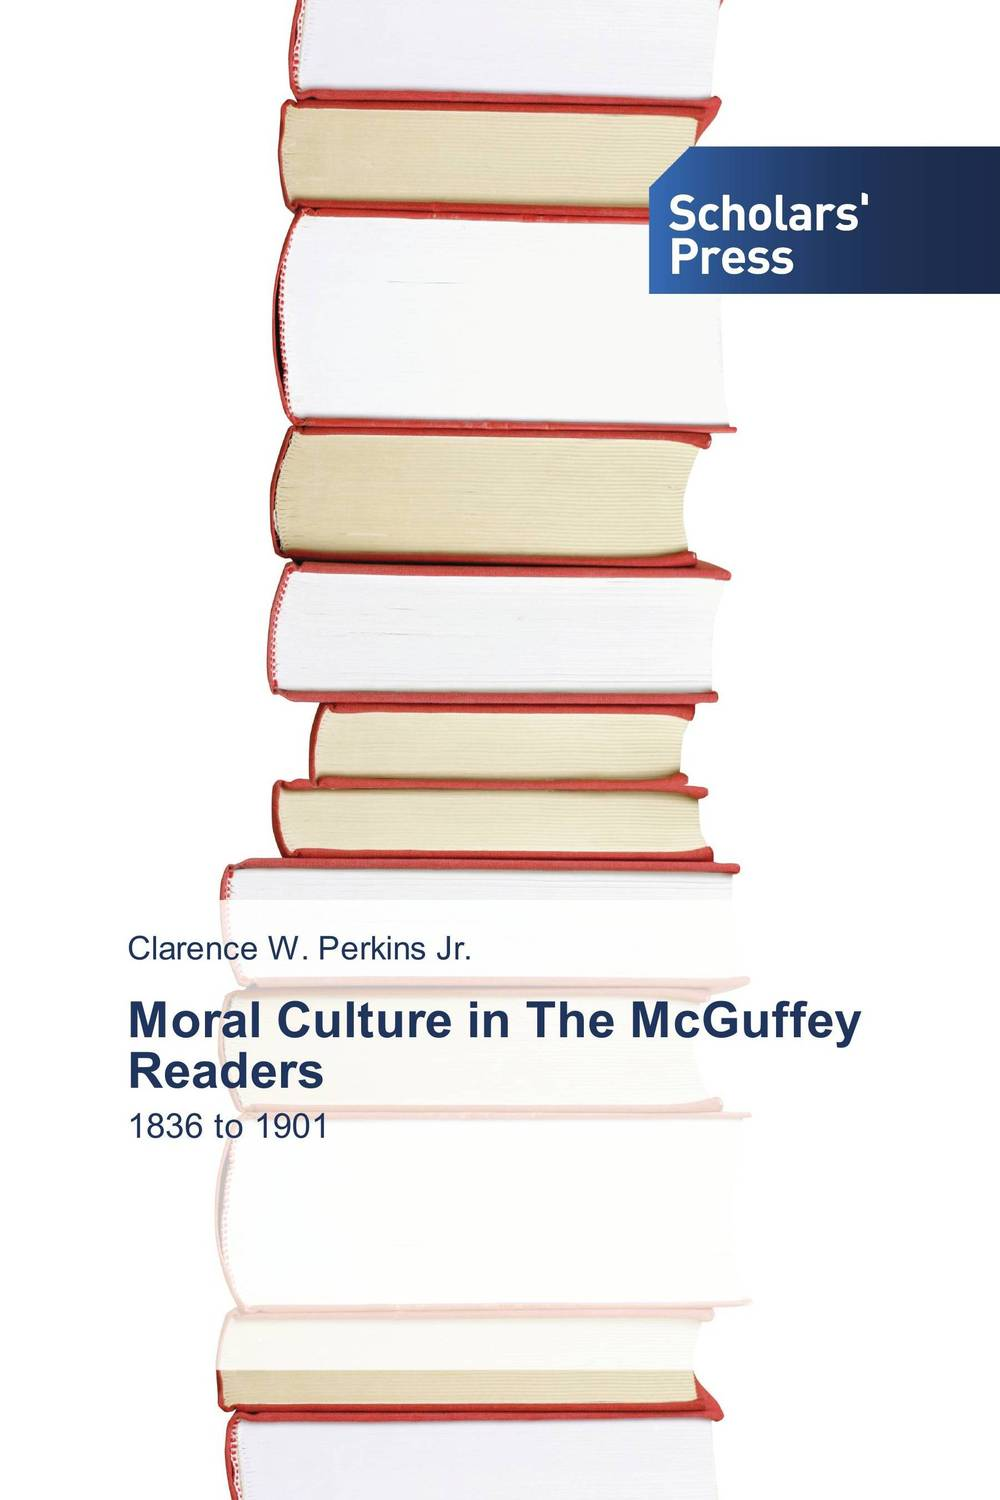 Moral Culture in The McGuffey Readers new england textiles in the nineteenth century – profits